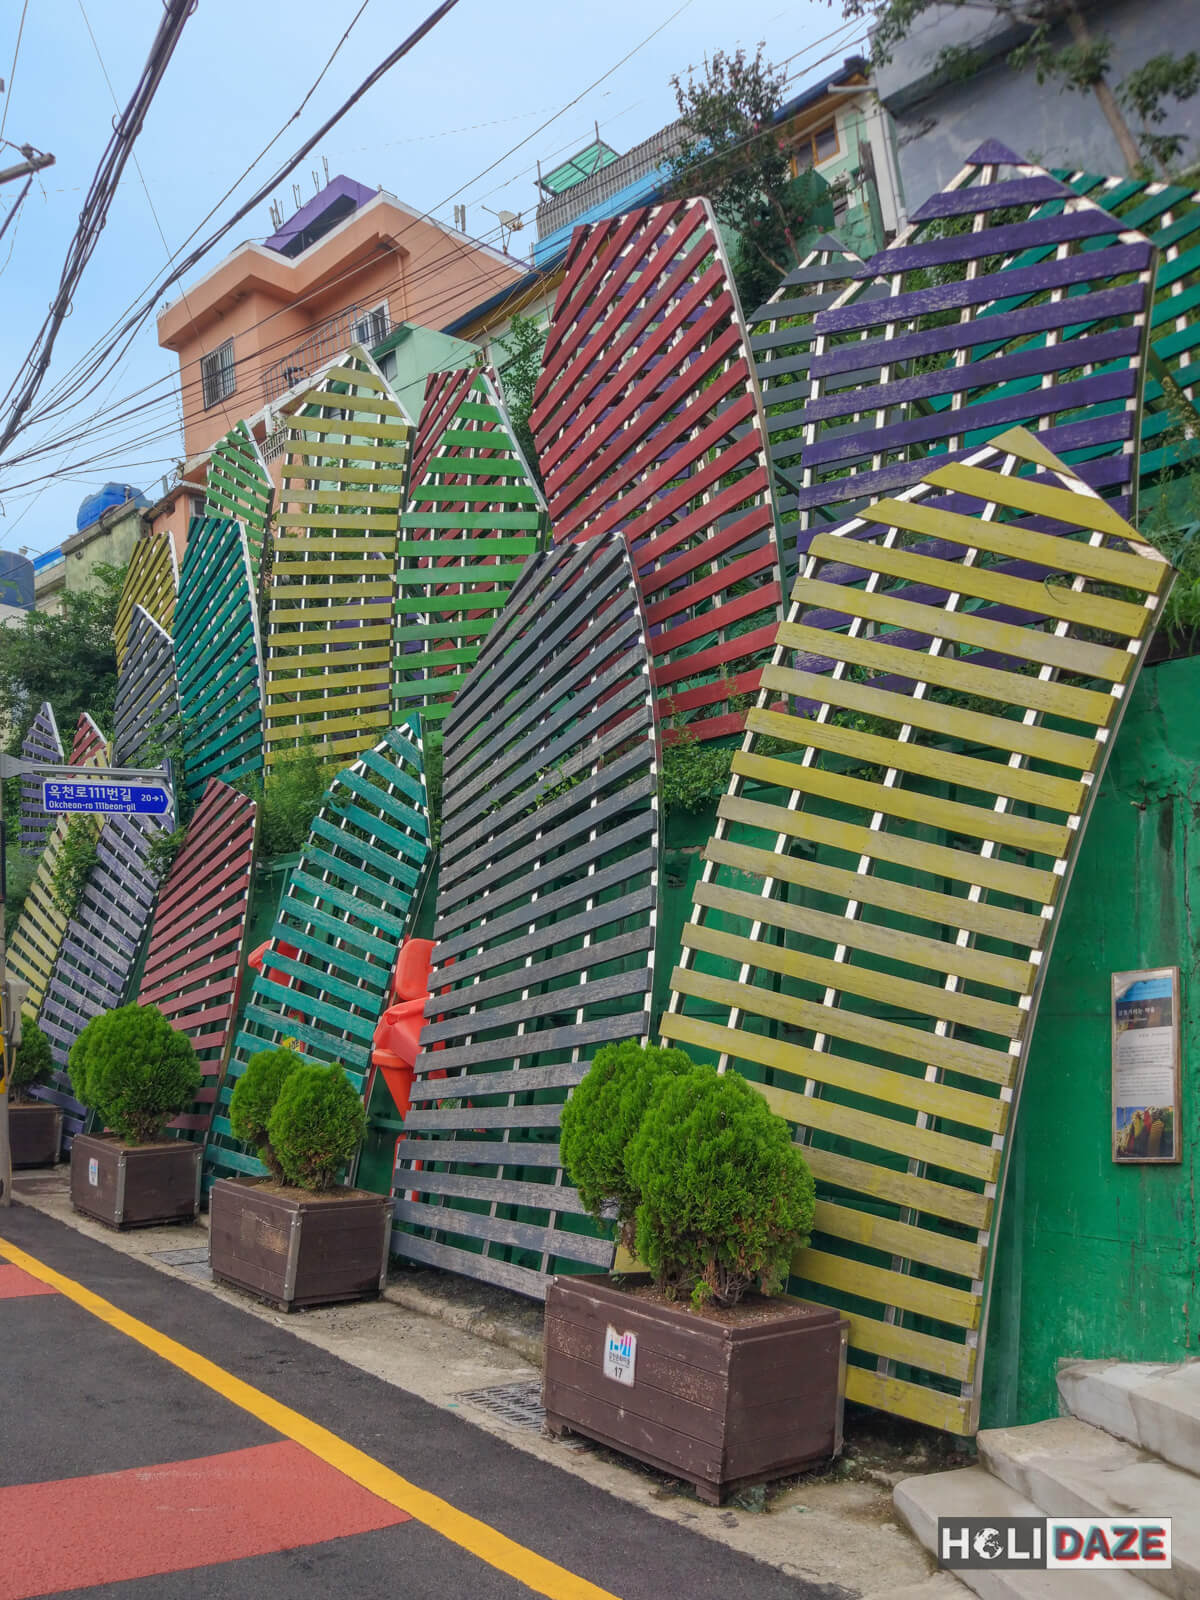 This piece of art at Gamcheon Culture Village is known as Wriggling Village